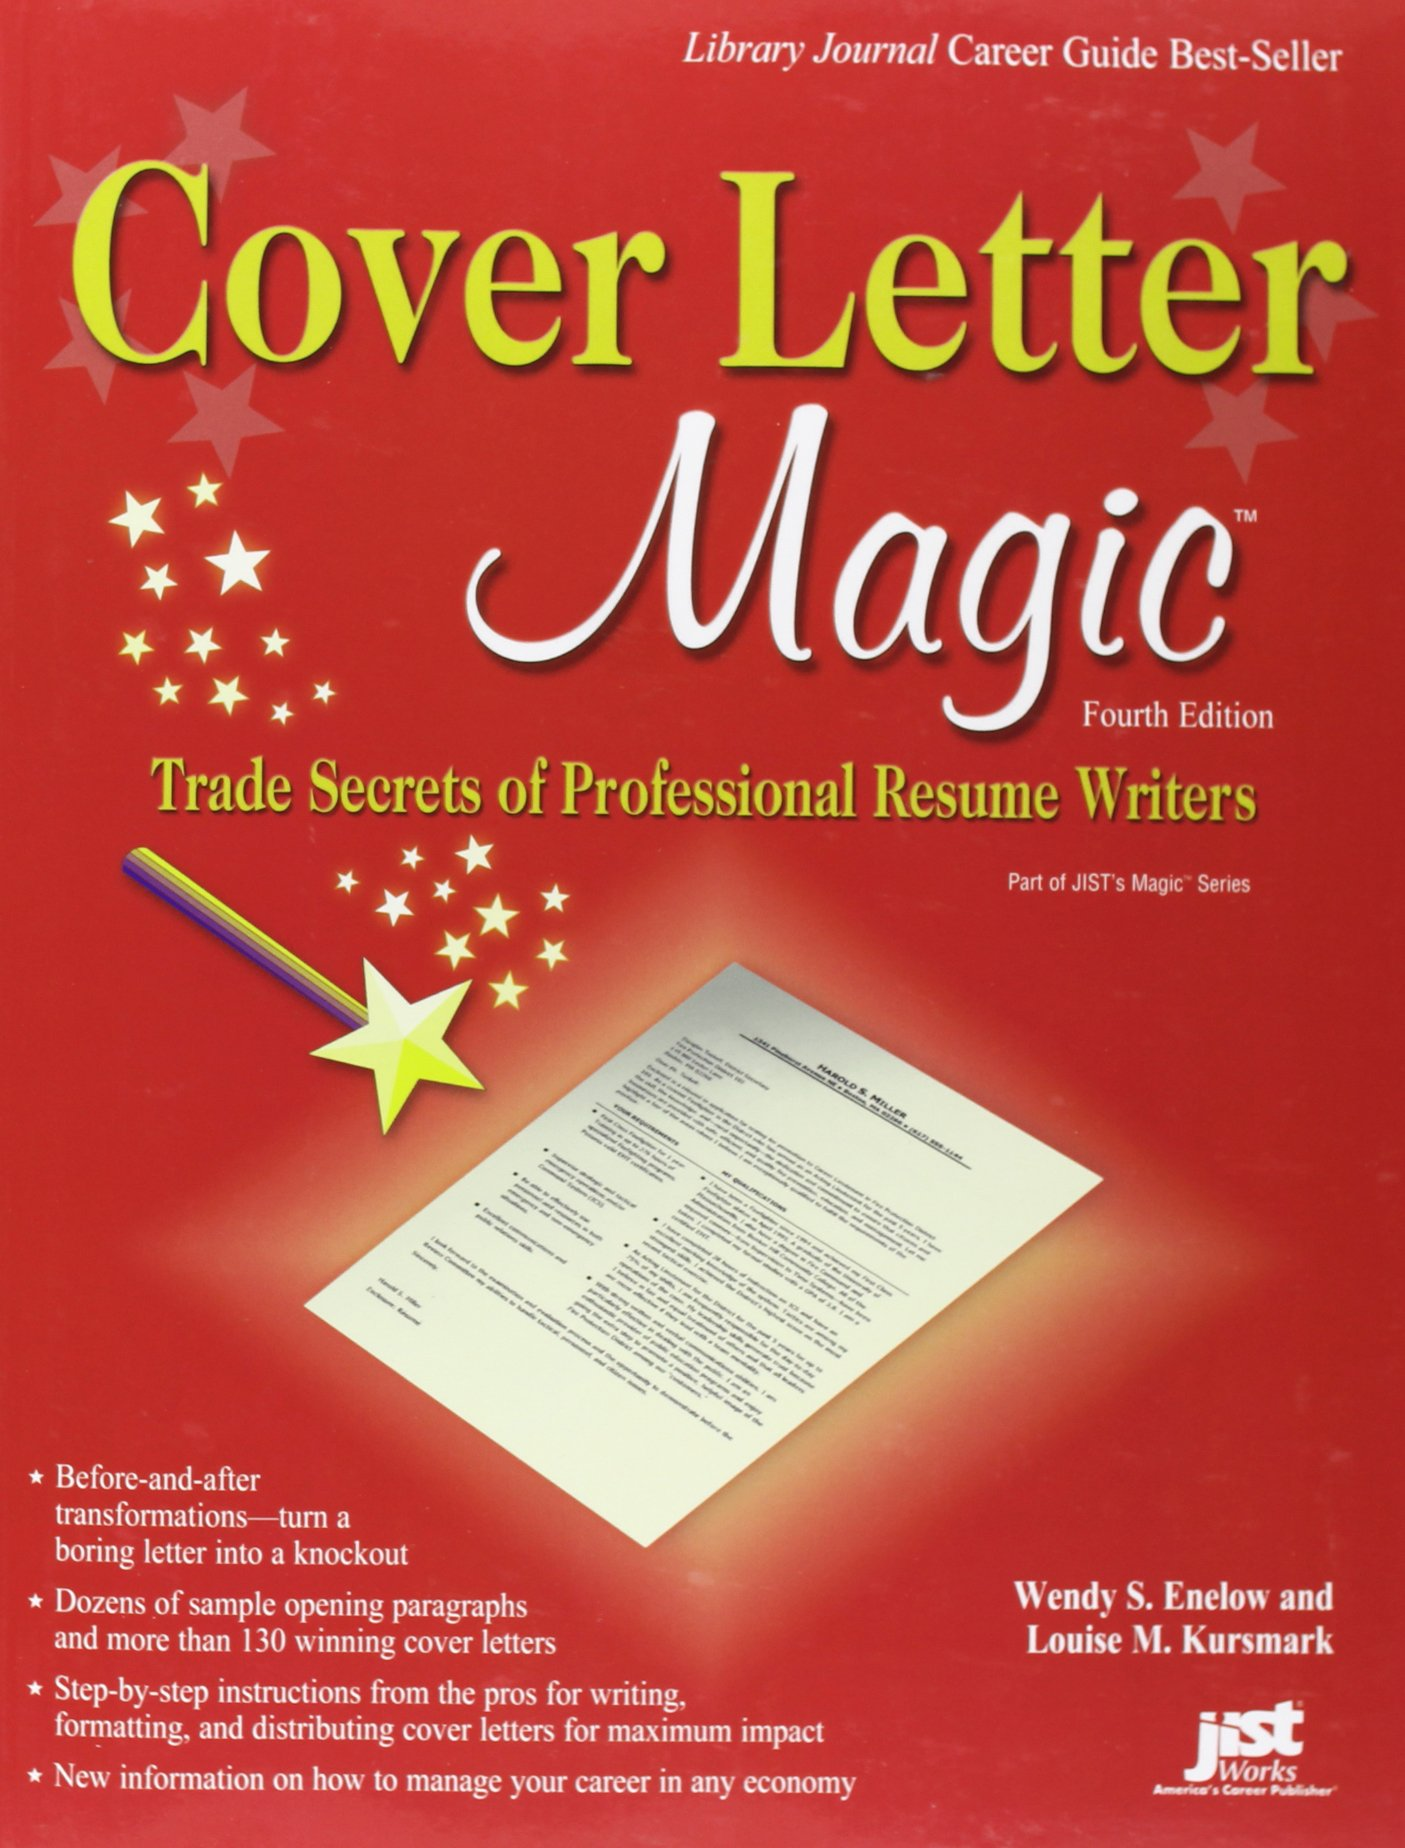 cover letter magic 4th trade secrets of professional resume writers wendy enelow louise Resume Best Books For Resume And Cover Letter Writing